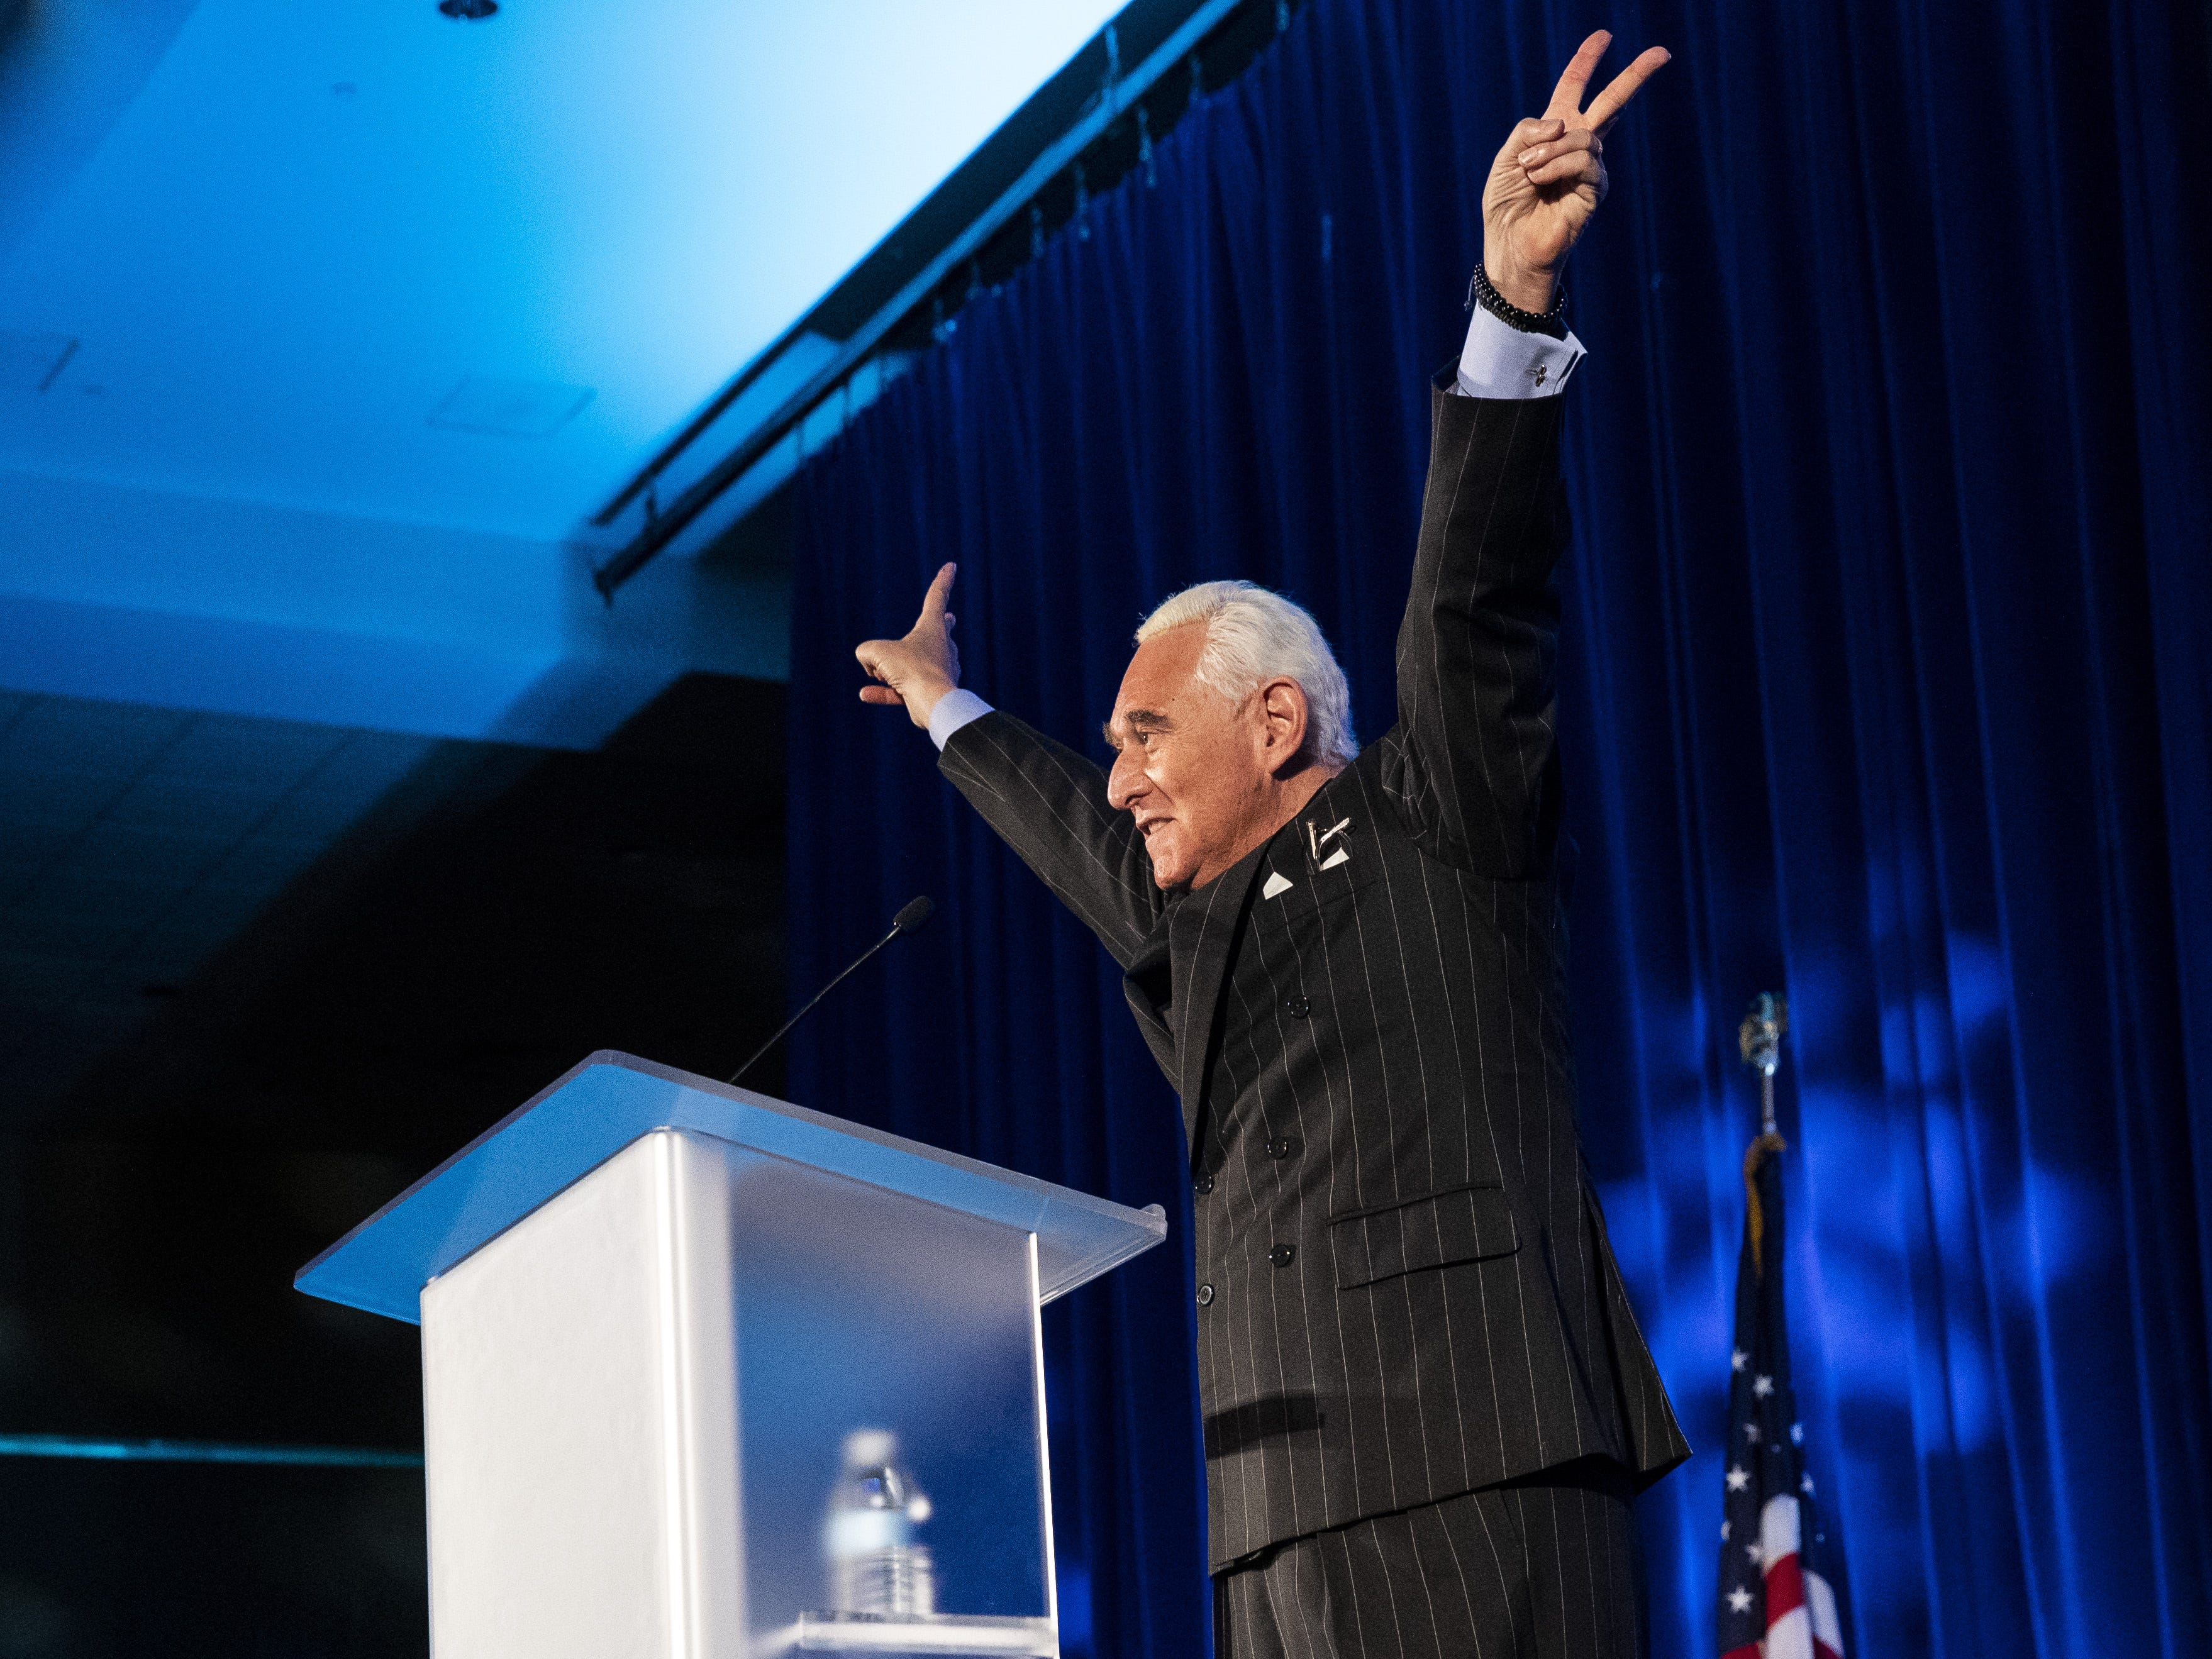 Political strategist Roger Stone gestures while speaking at the American Priority Conference, December 6, 2018 in Washington.